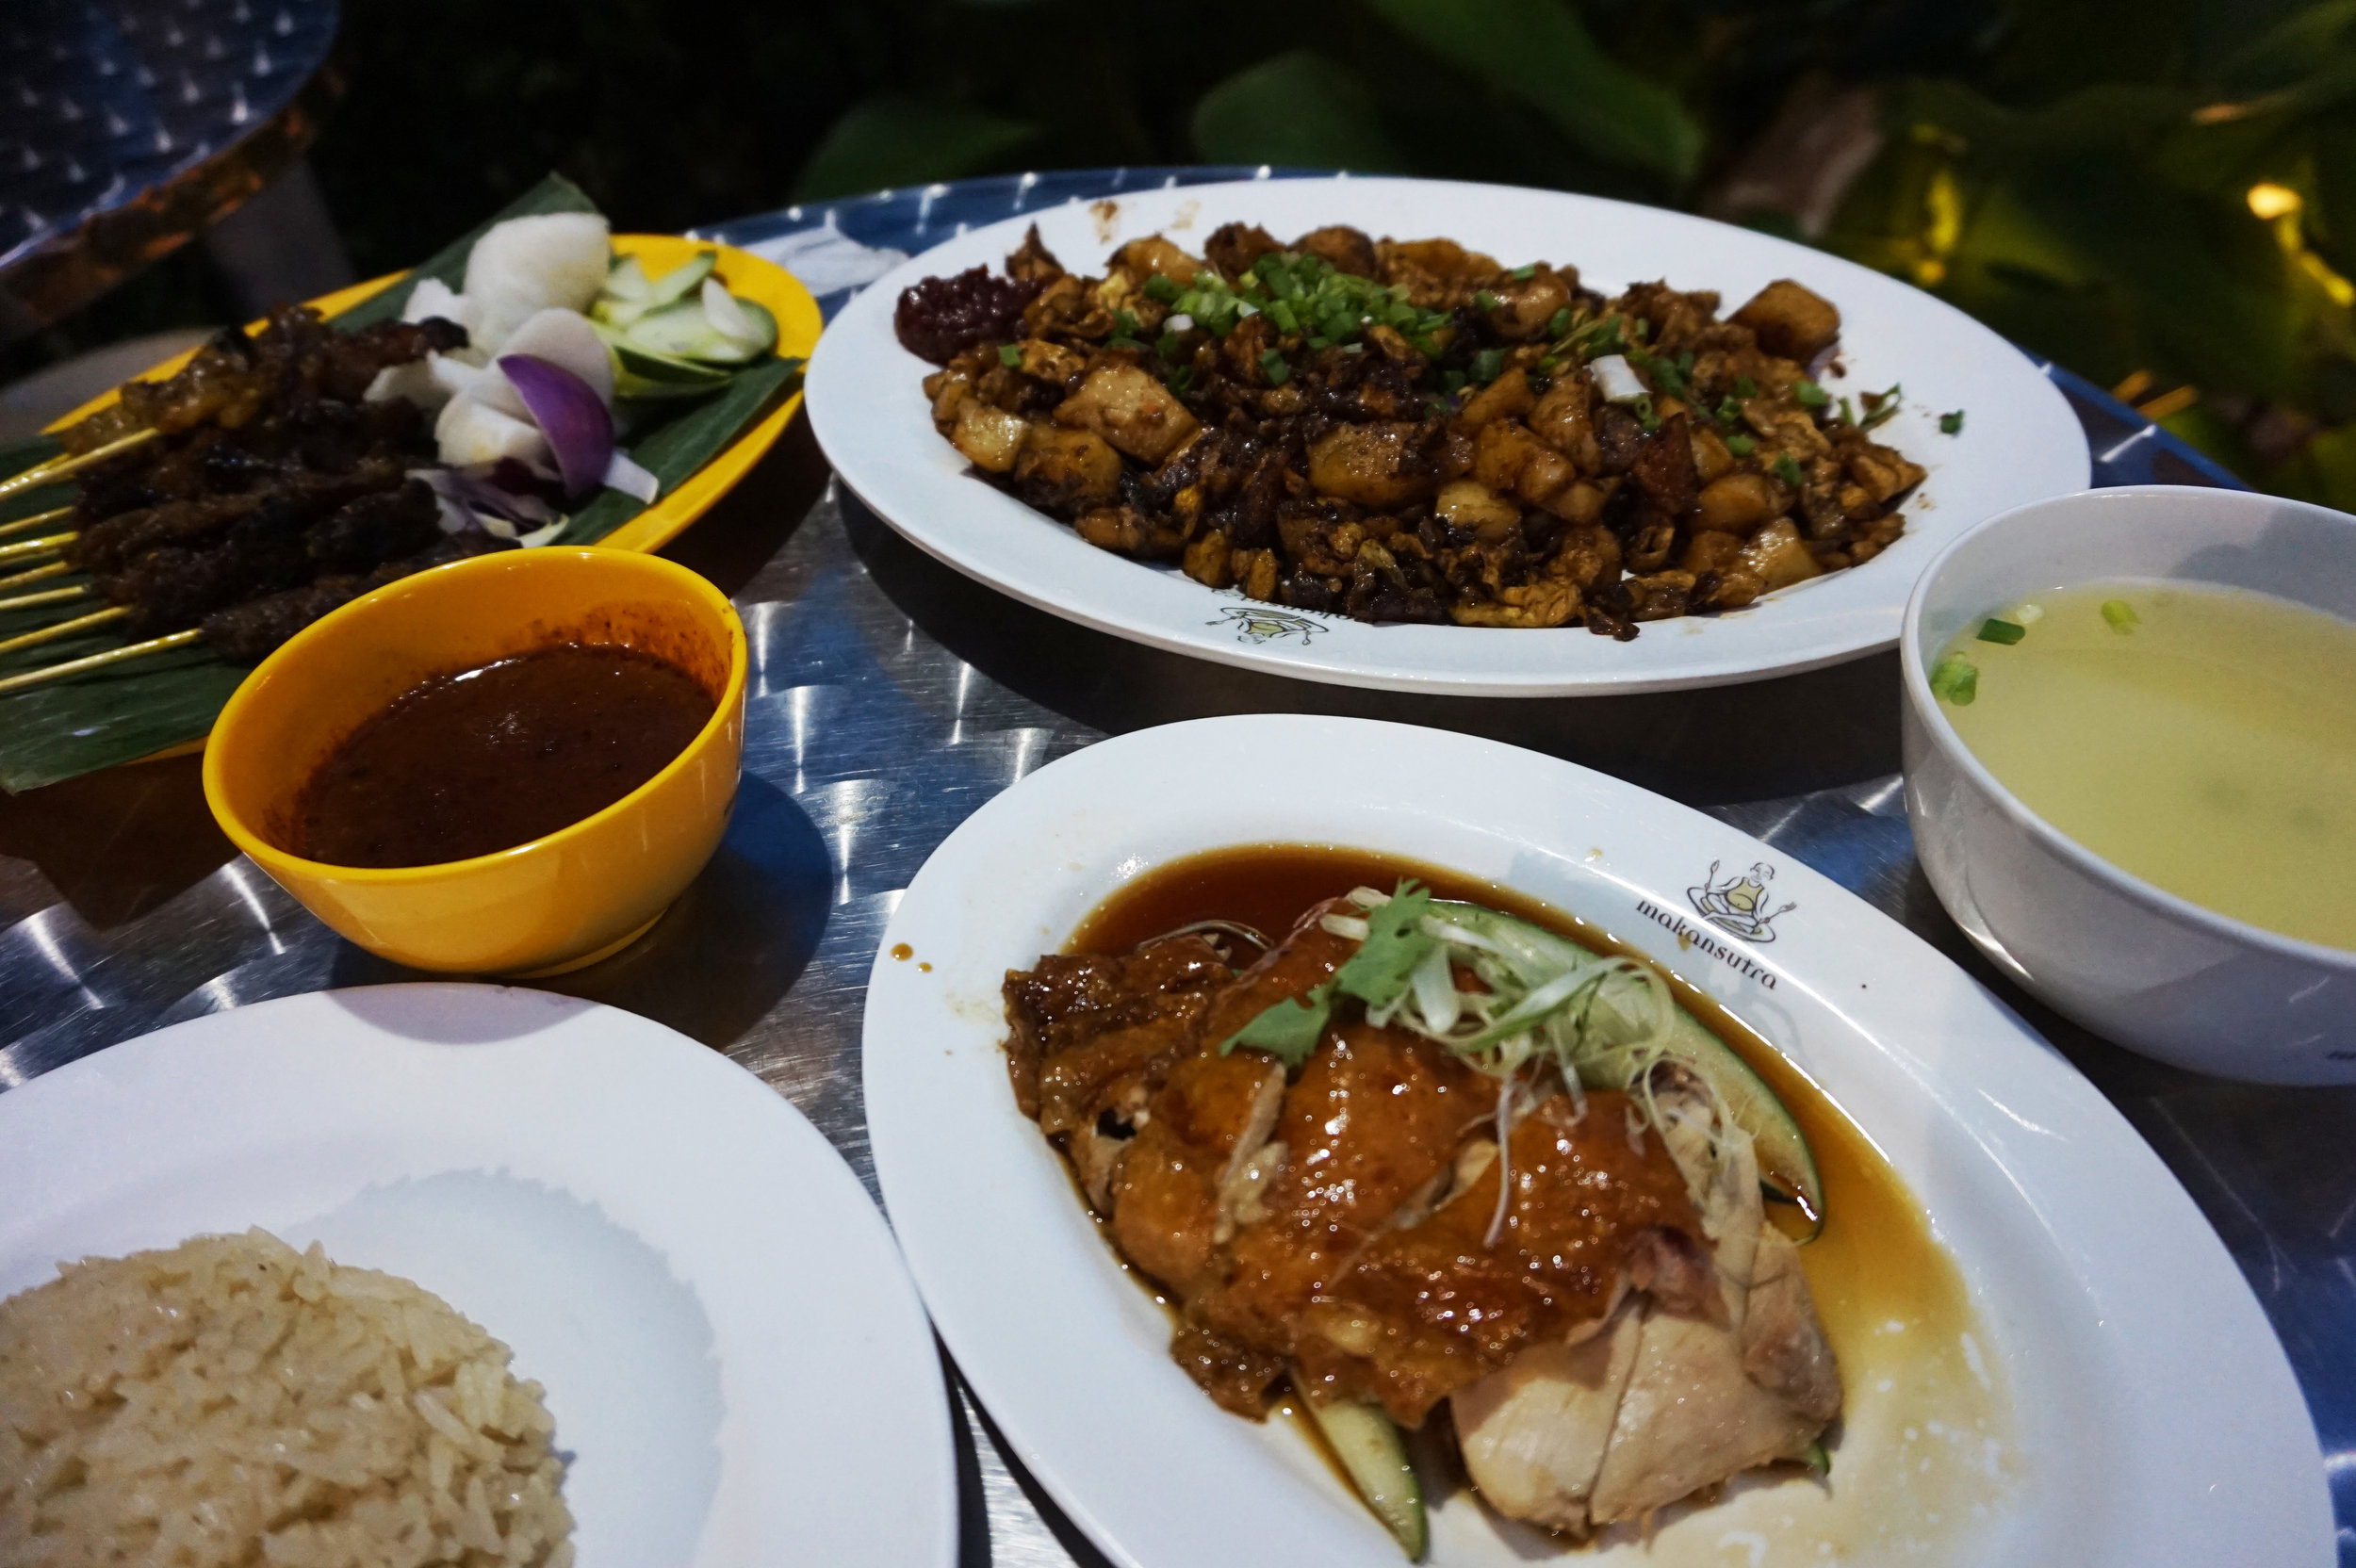 Chicken rice and carrot cake from Makansutra Glutton Bay